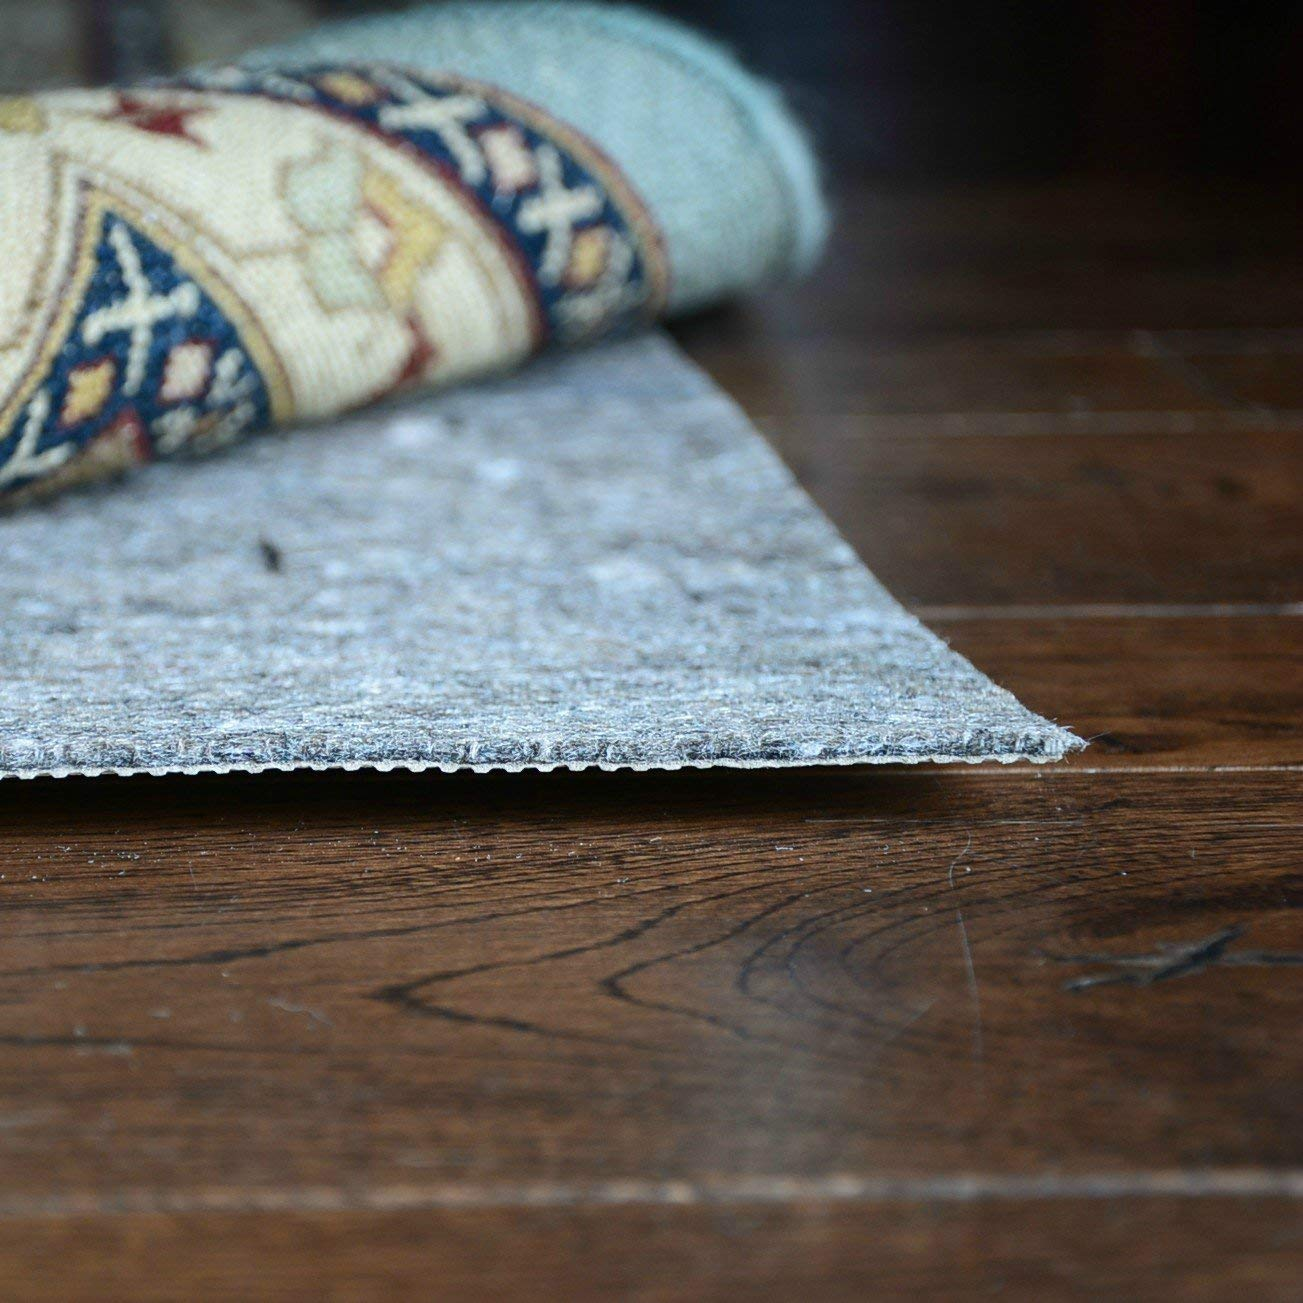 DURA-GRIP® Non Slip Rug Pad Felt & Natural Rubber SAFE for all Floors - 1/8 Thick (5x7 Feet - Rectangle)